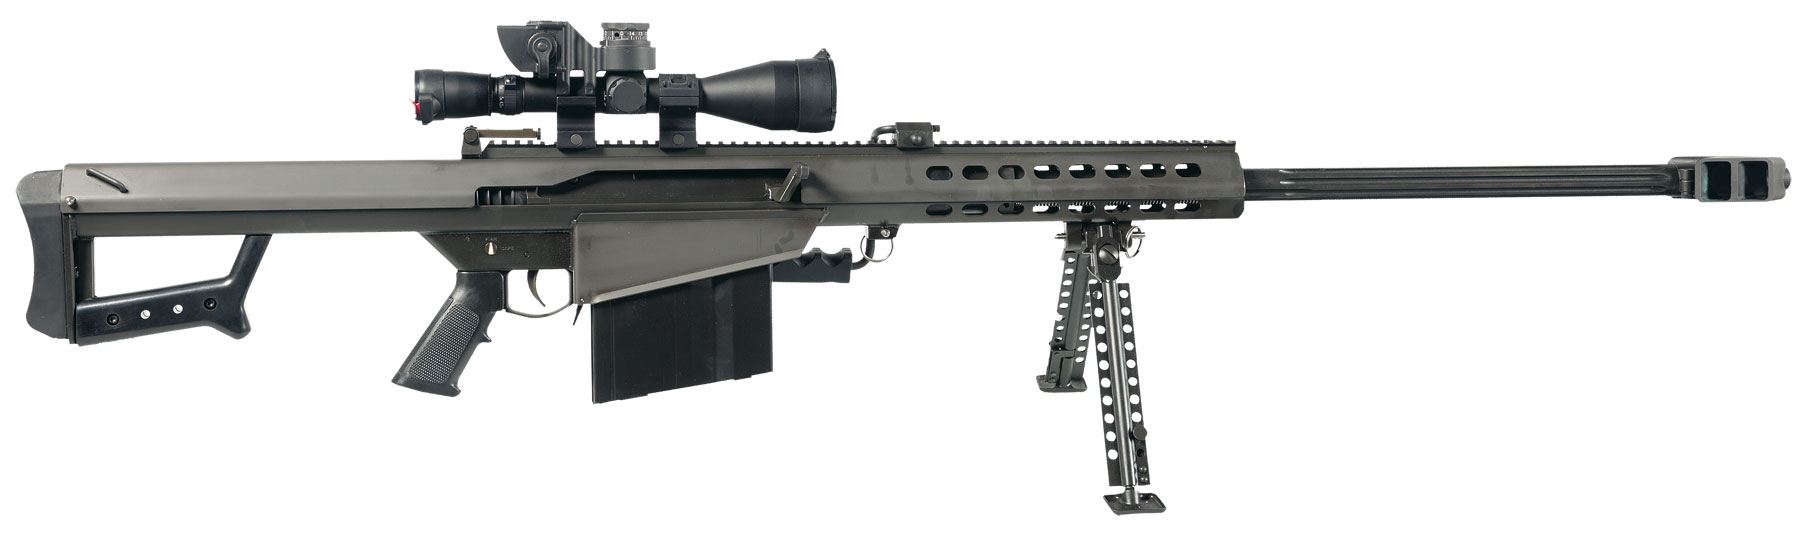 US Army To Purchase 50 Caliber Long Range Sniper Rifles